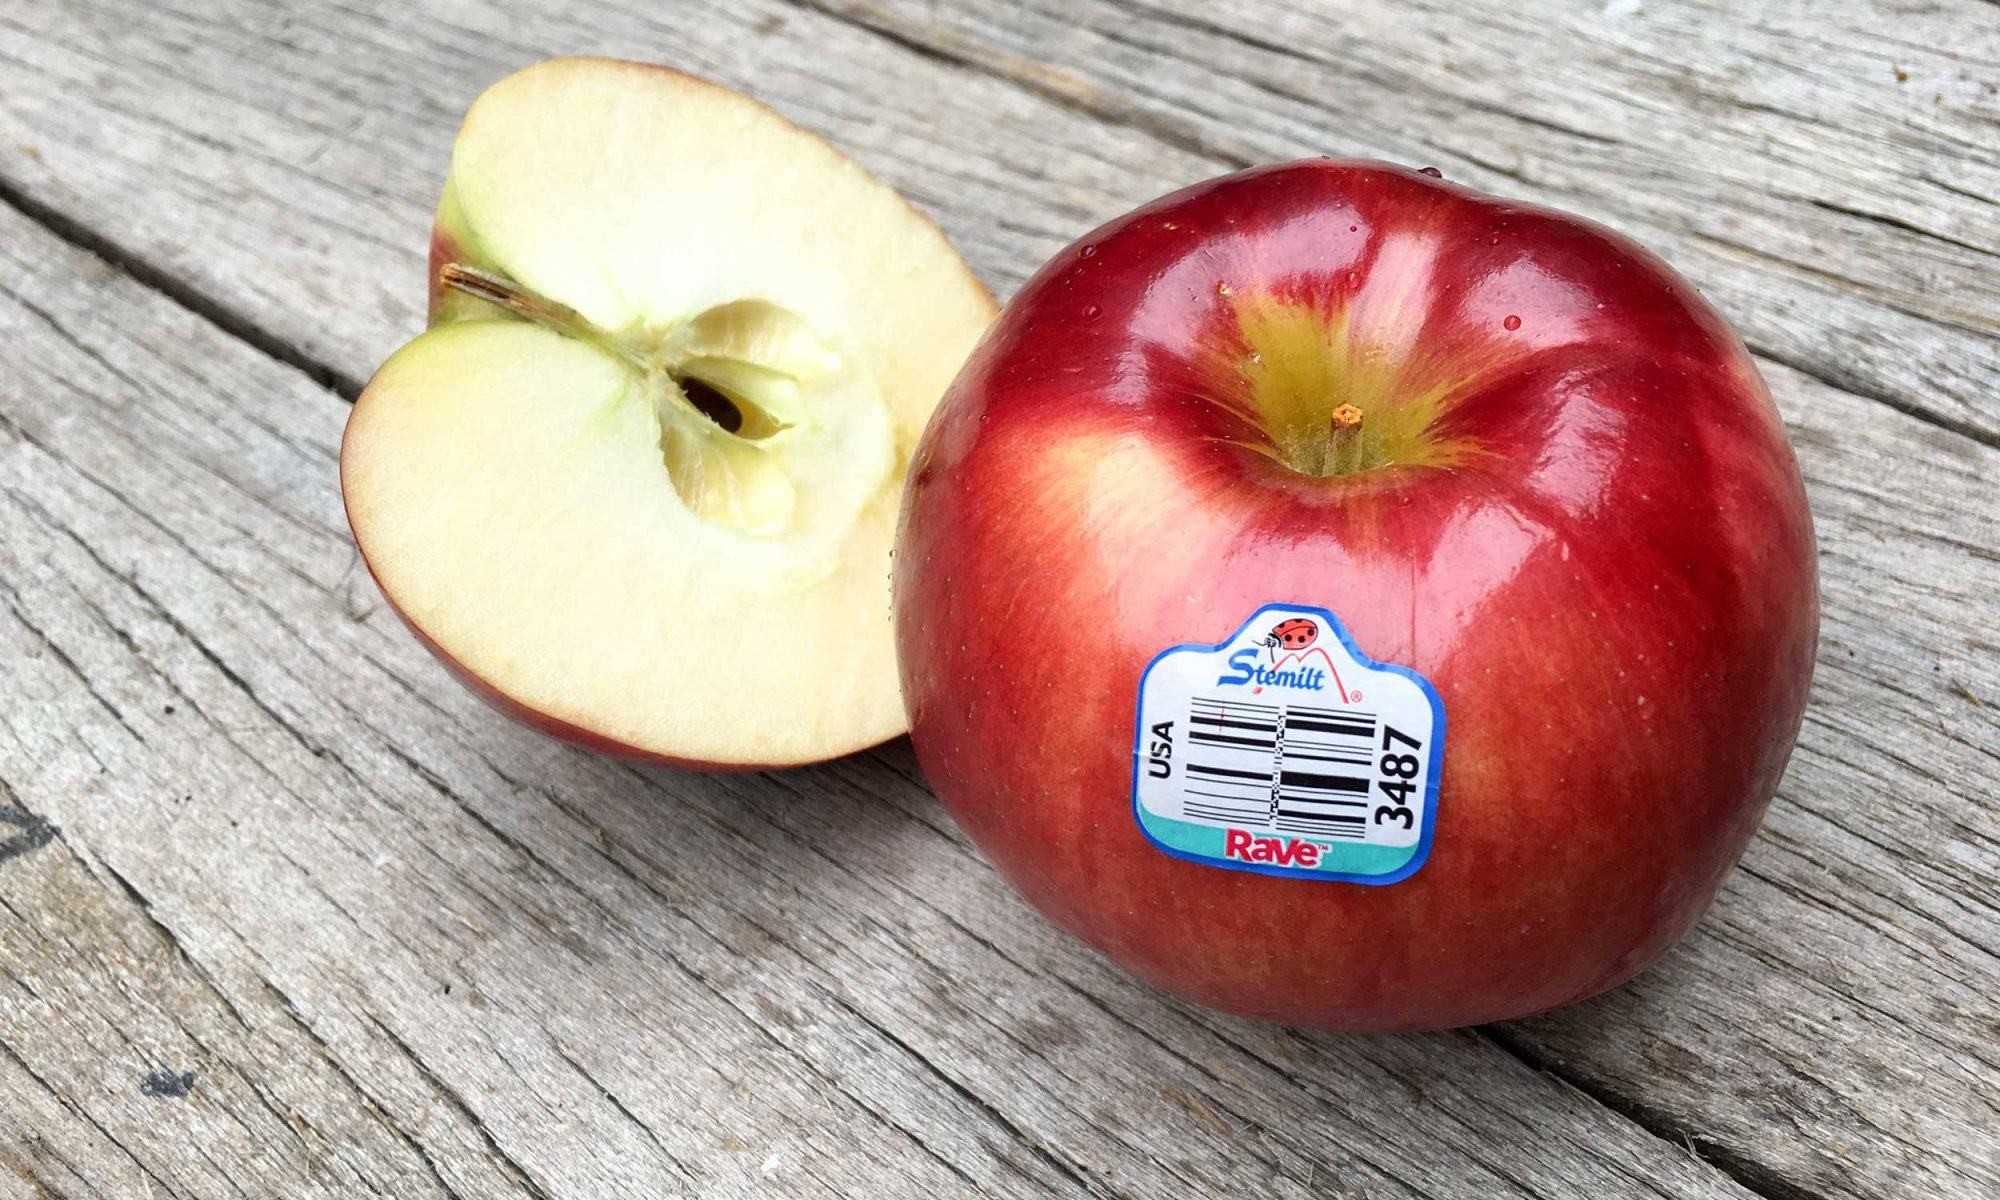 EC: This New Type of Apple Is Coming to Your Supermarket